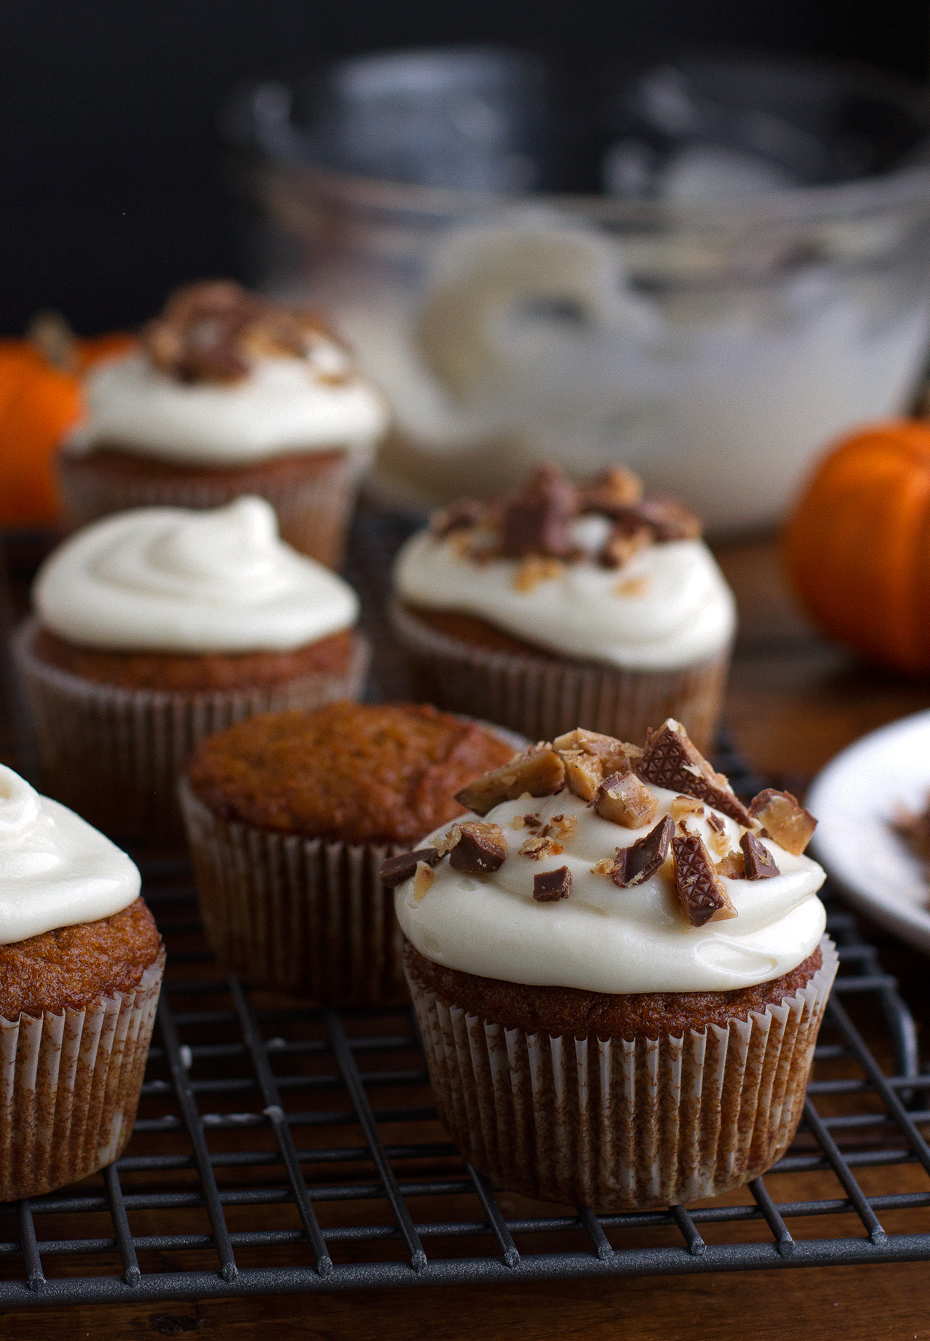 Barefoot Contessa Pumpkin Muffins Pumpkin Cupcakes With Maple Cream Cheese Frosting Recipe Little